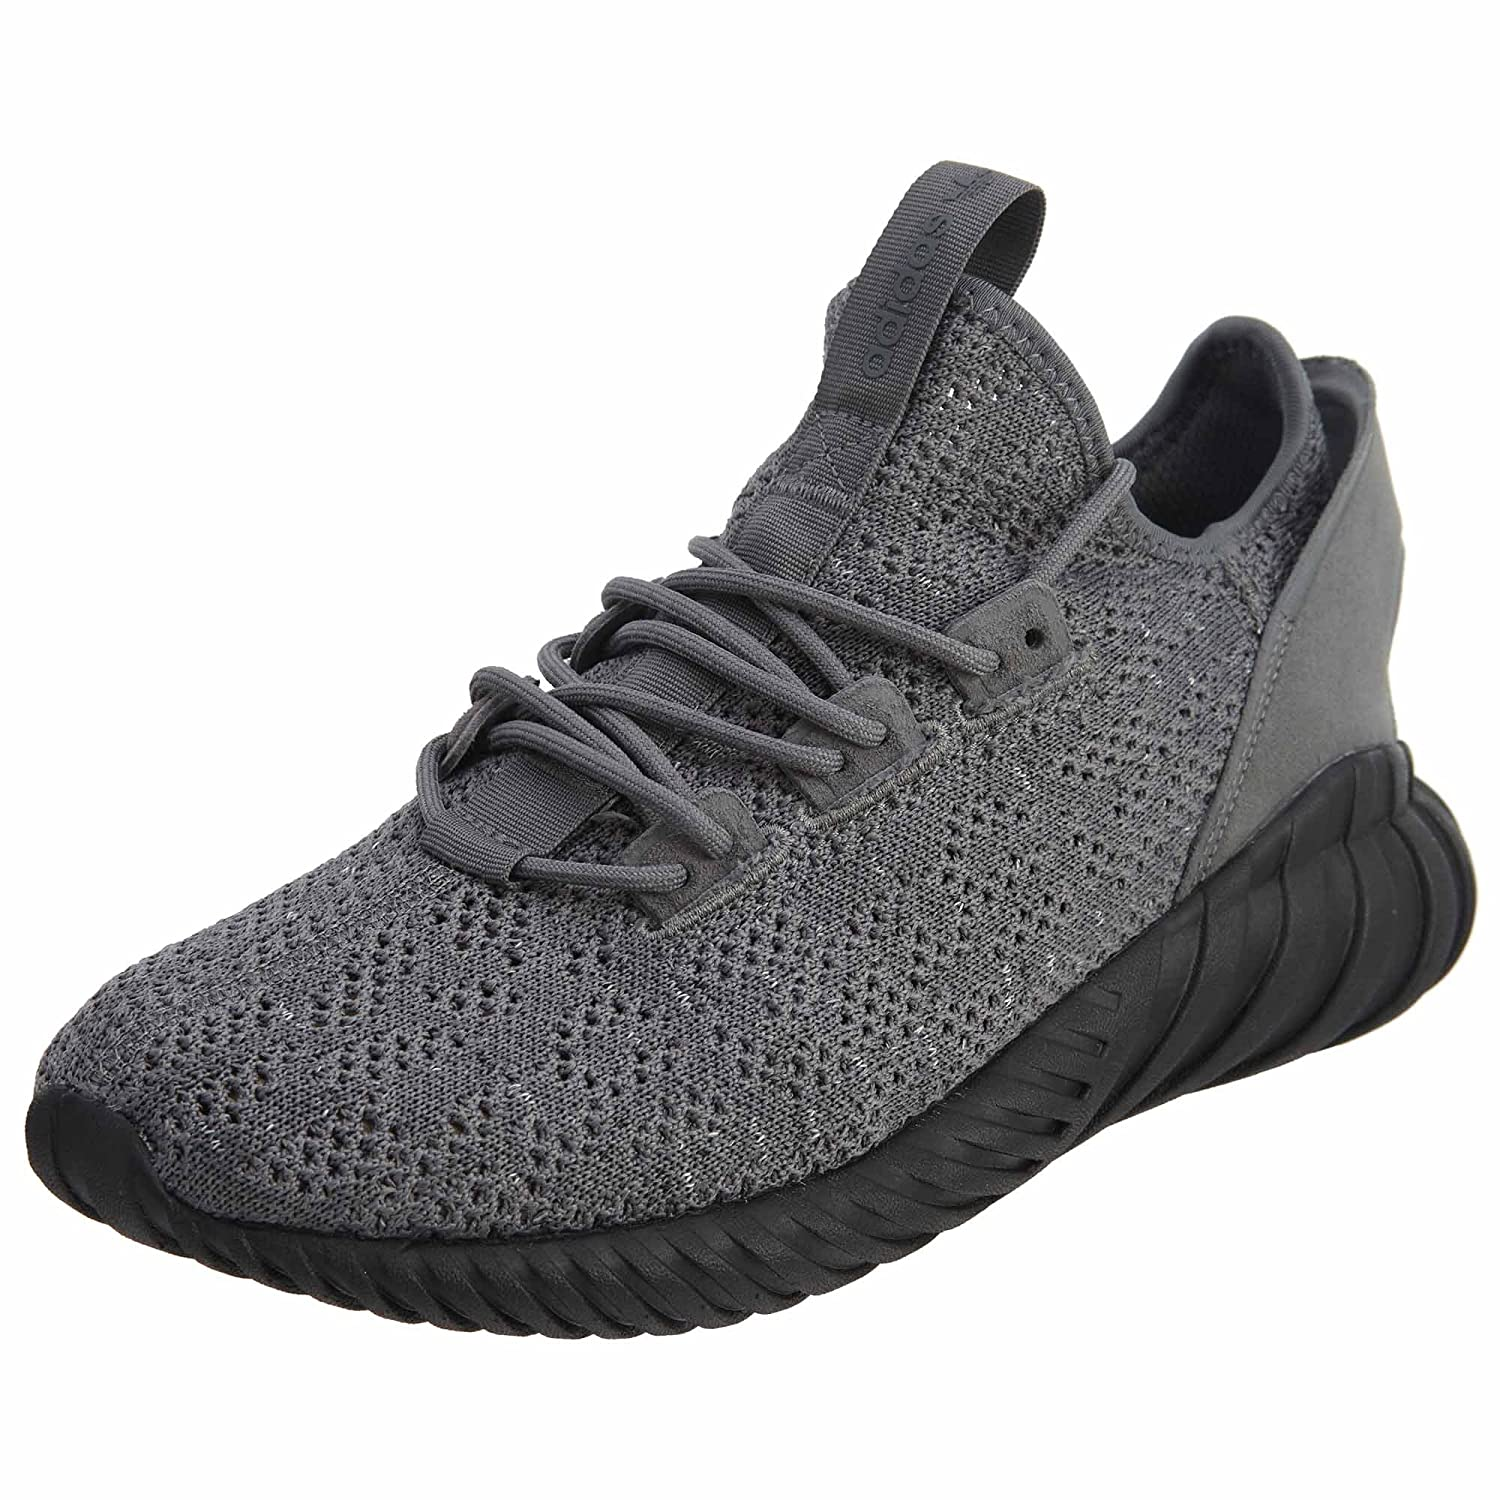 premium selection aa8ee 975e1 adidas Tubular Doom Sock PK Mens Shoes Grey/Core Black/Footwear White  by3564 (8.5 M US)